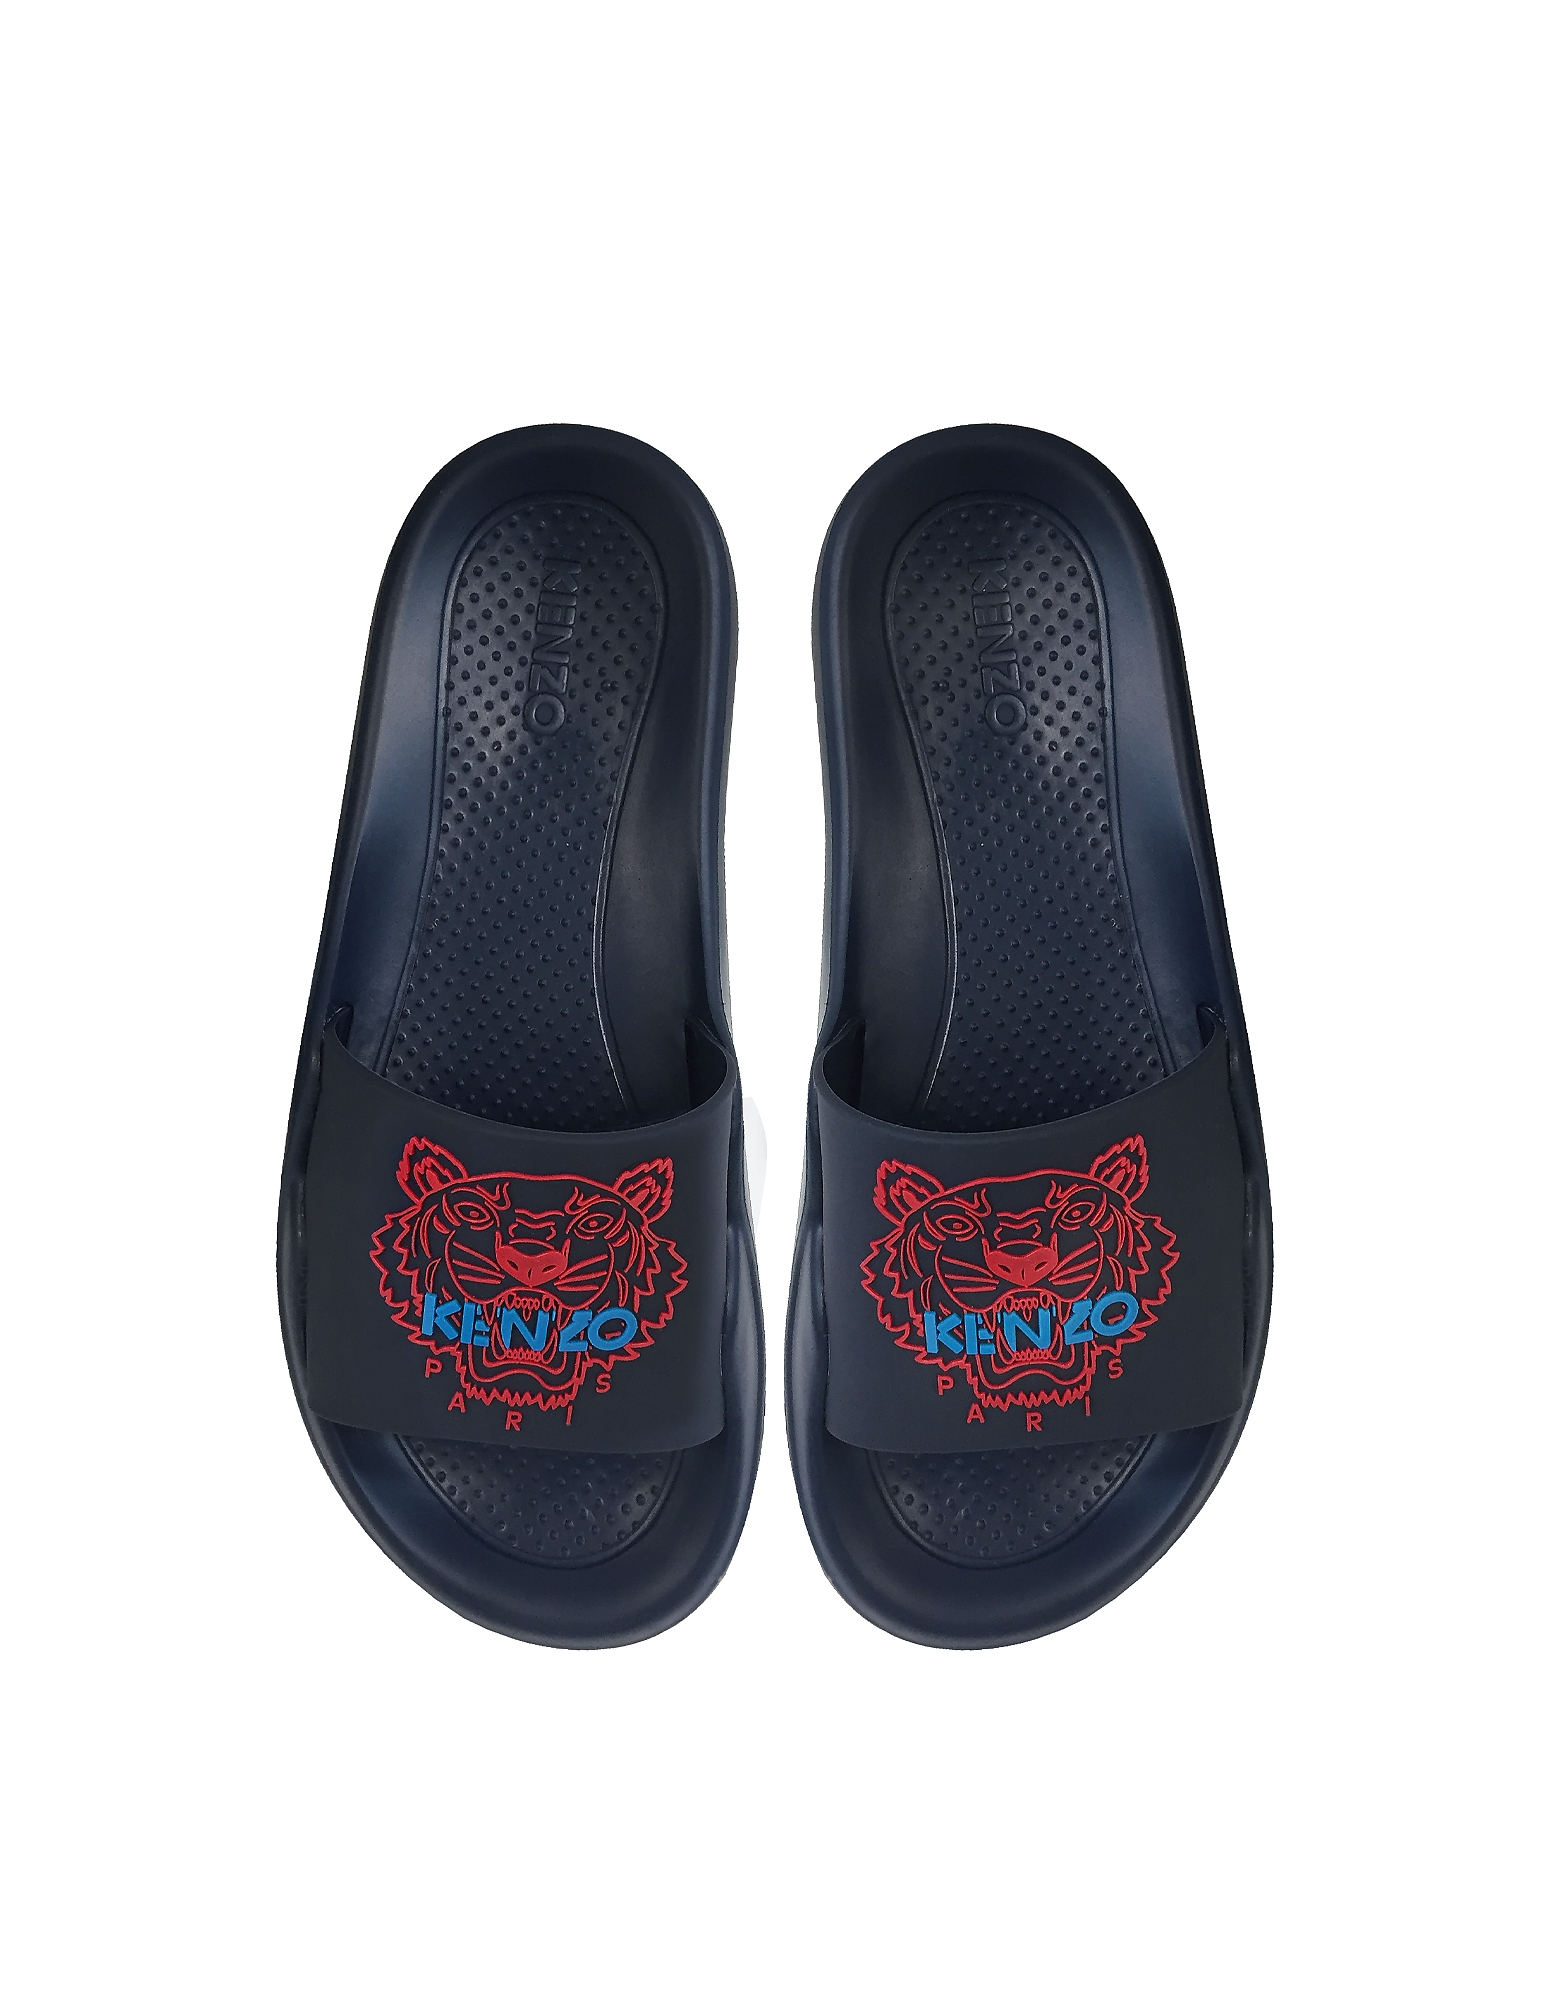 Kenzo Shoes, Navy Blue Tiger Women's Flat Sandals